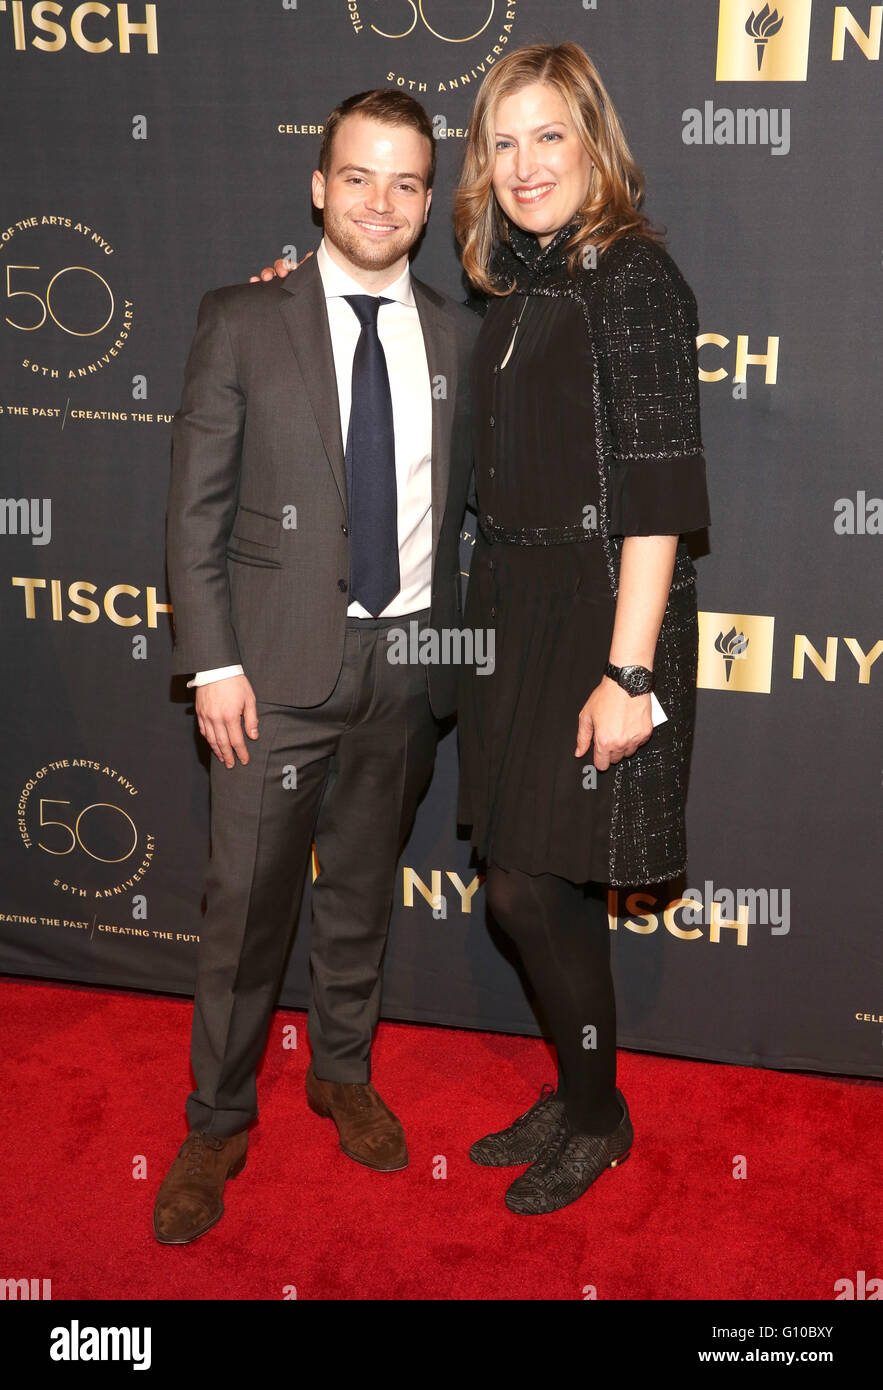 Nyu Tisch Alumni.Nyu Tisch 50th Anniversary Gala Hosted By Alec Baldwin And